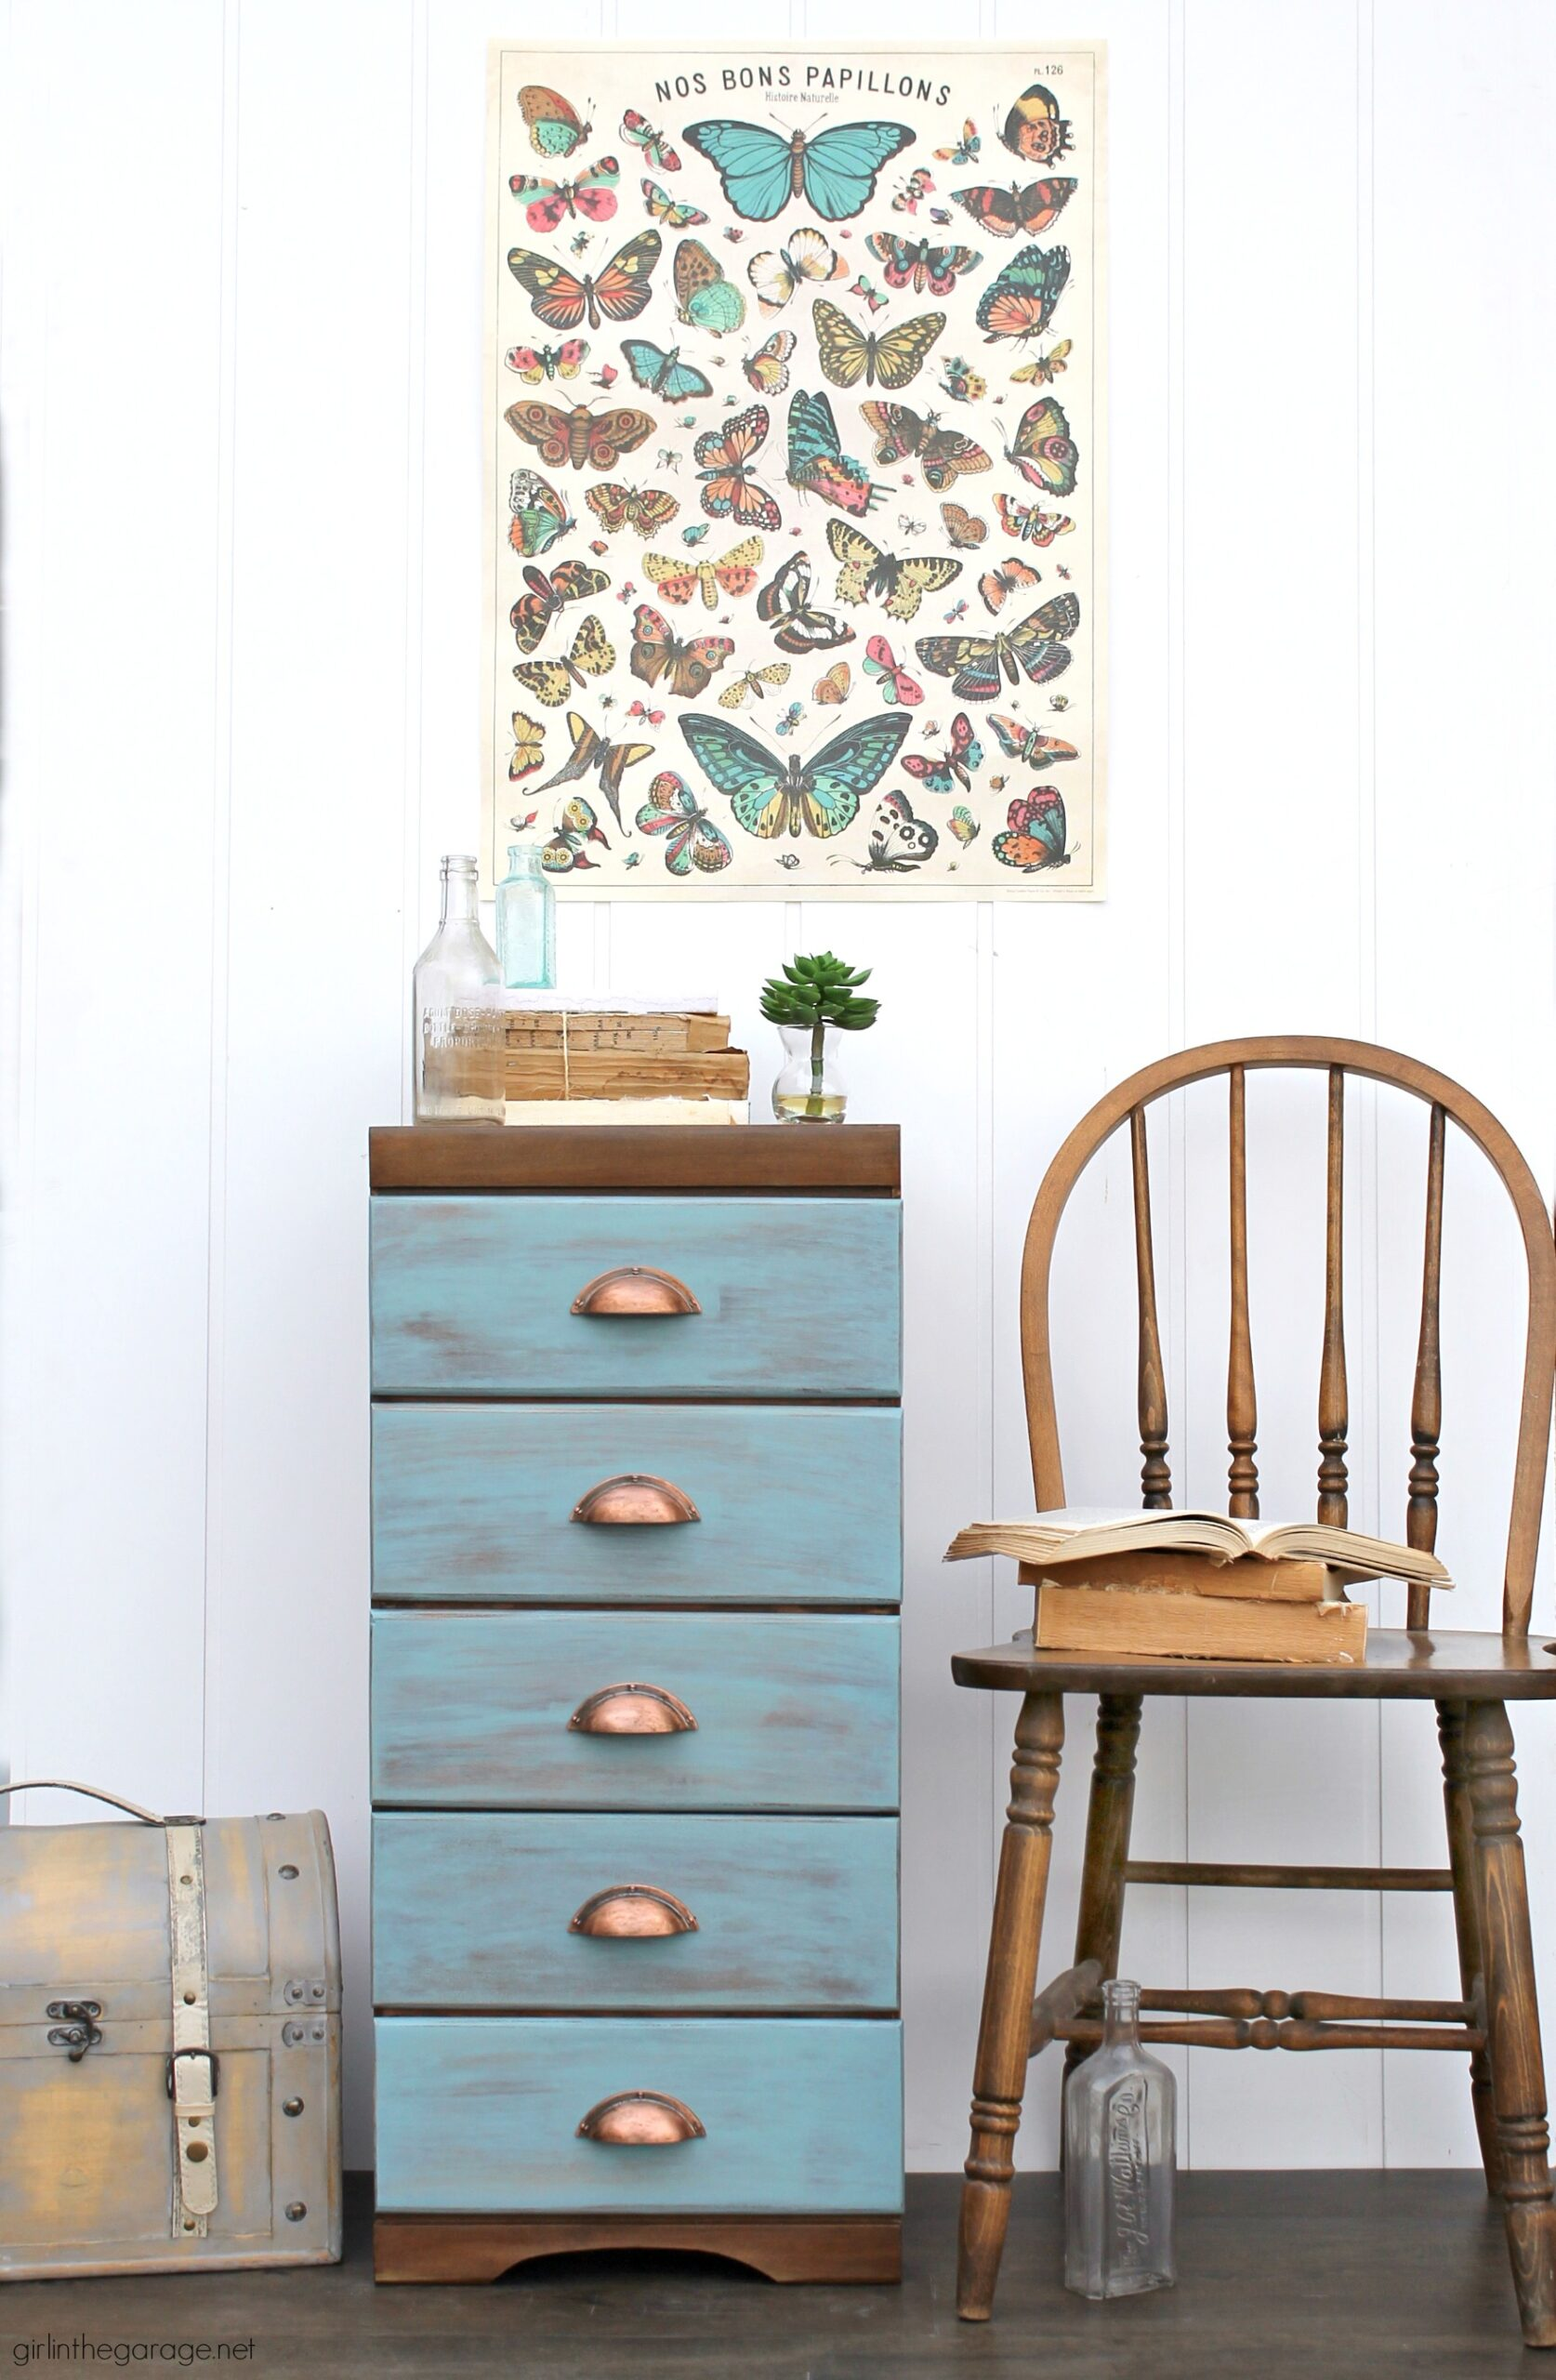 Learn how to refinish a dresser with Minwax products including Vintage Blue, the 2021 Color of the Year. Add faux-aged copper pulls and map paper lined drawers for the finishing touch. #ad DIY makeover ideas by Girl in the Garage